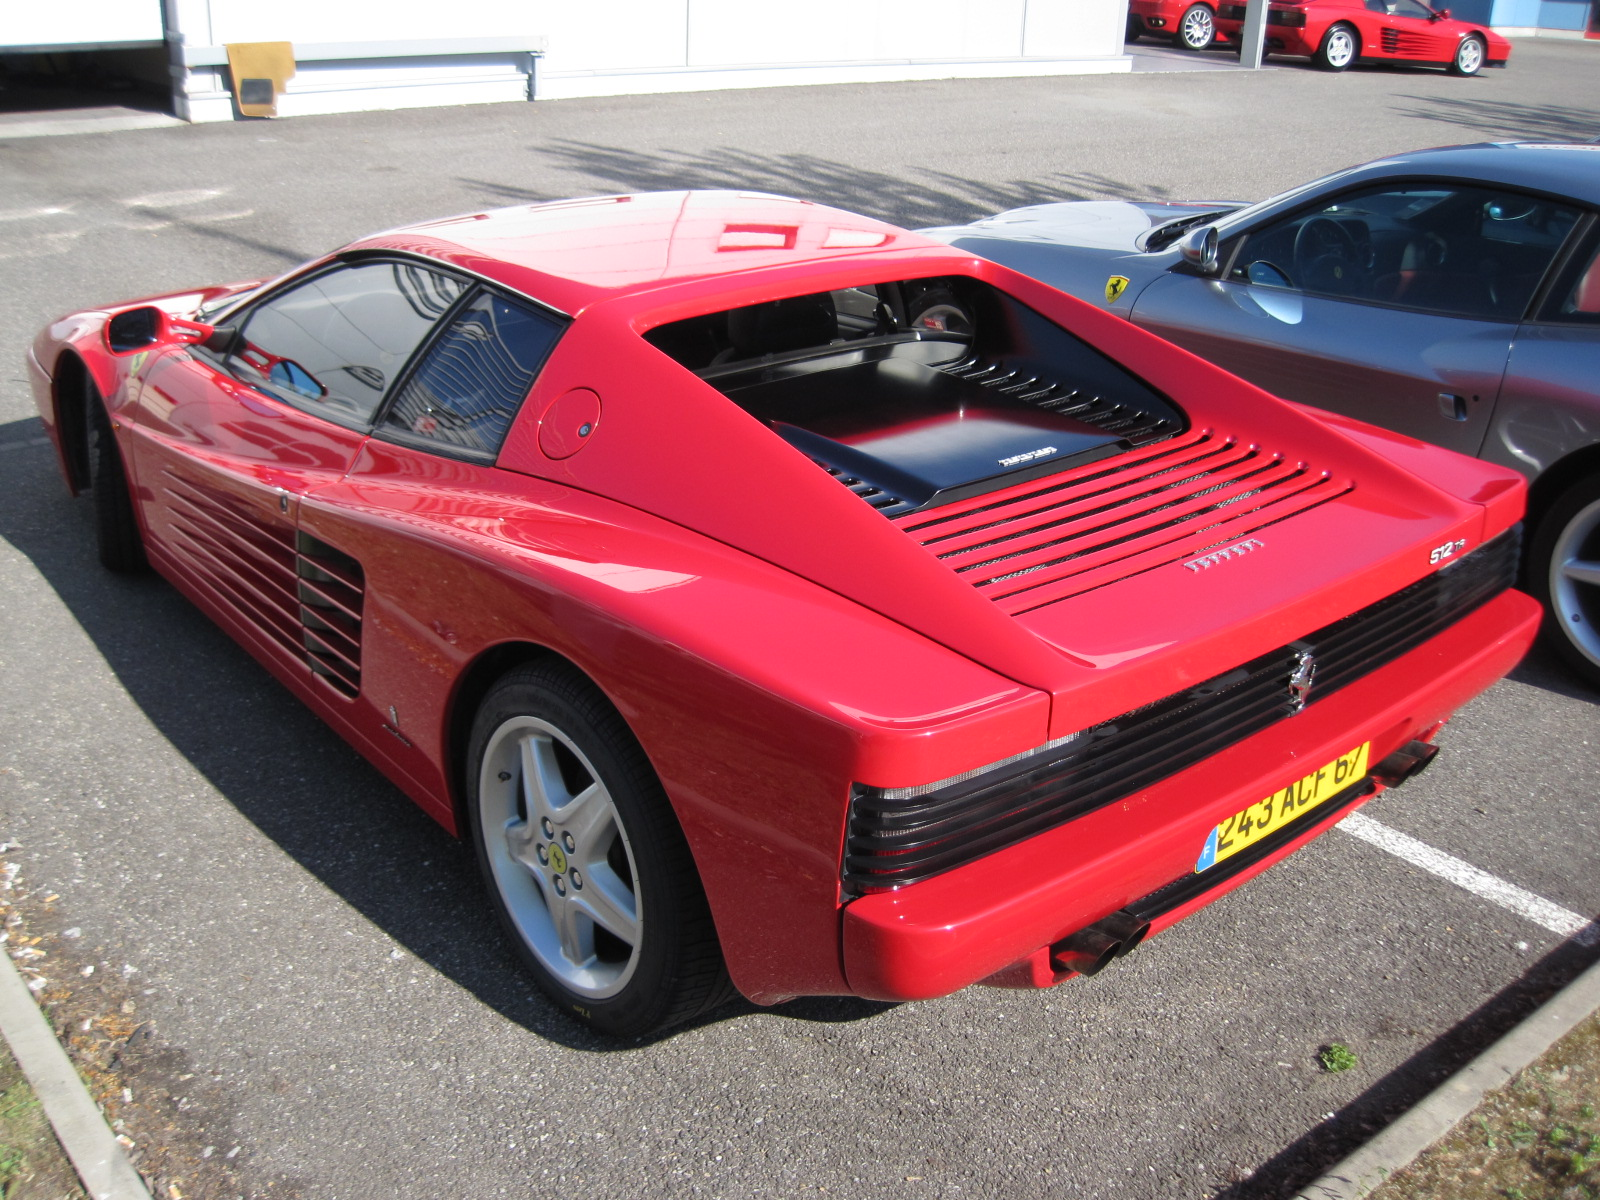 file:ferrari 512 tr 0003 - wikimedia commons